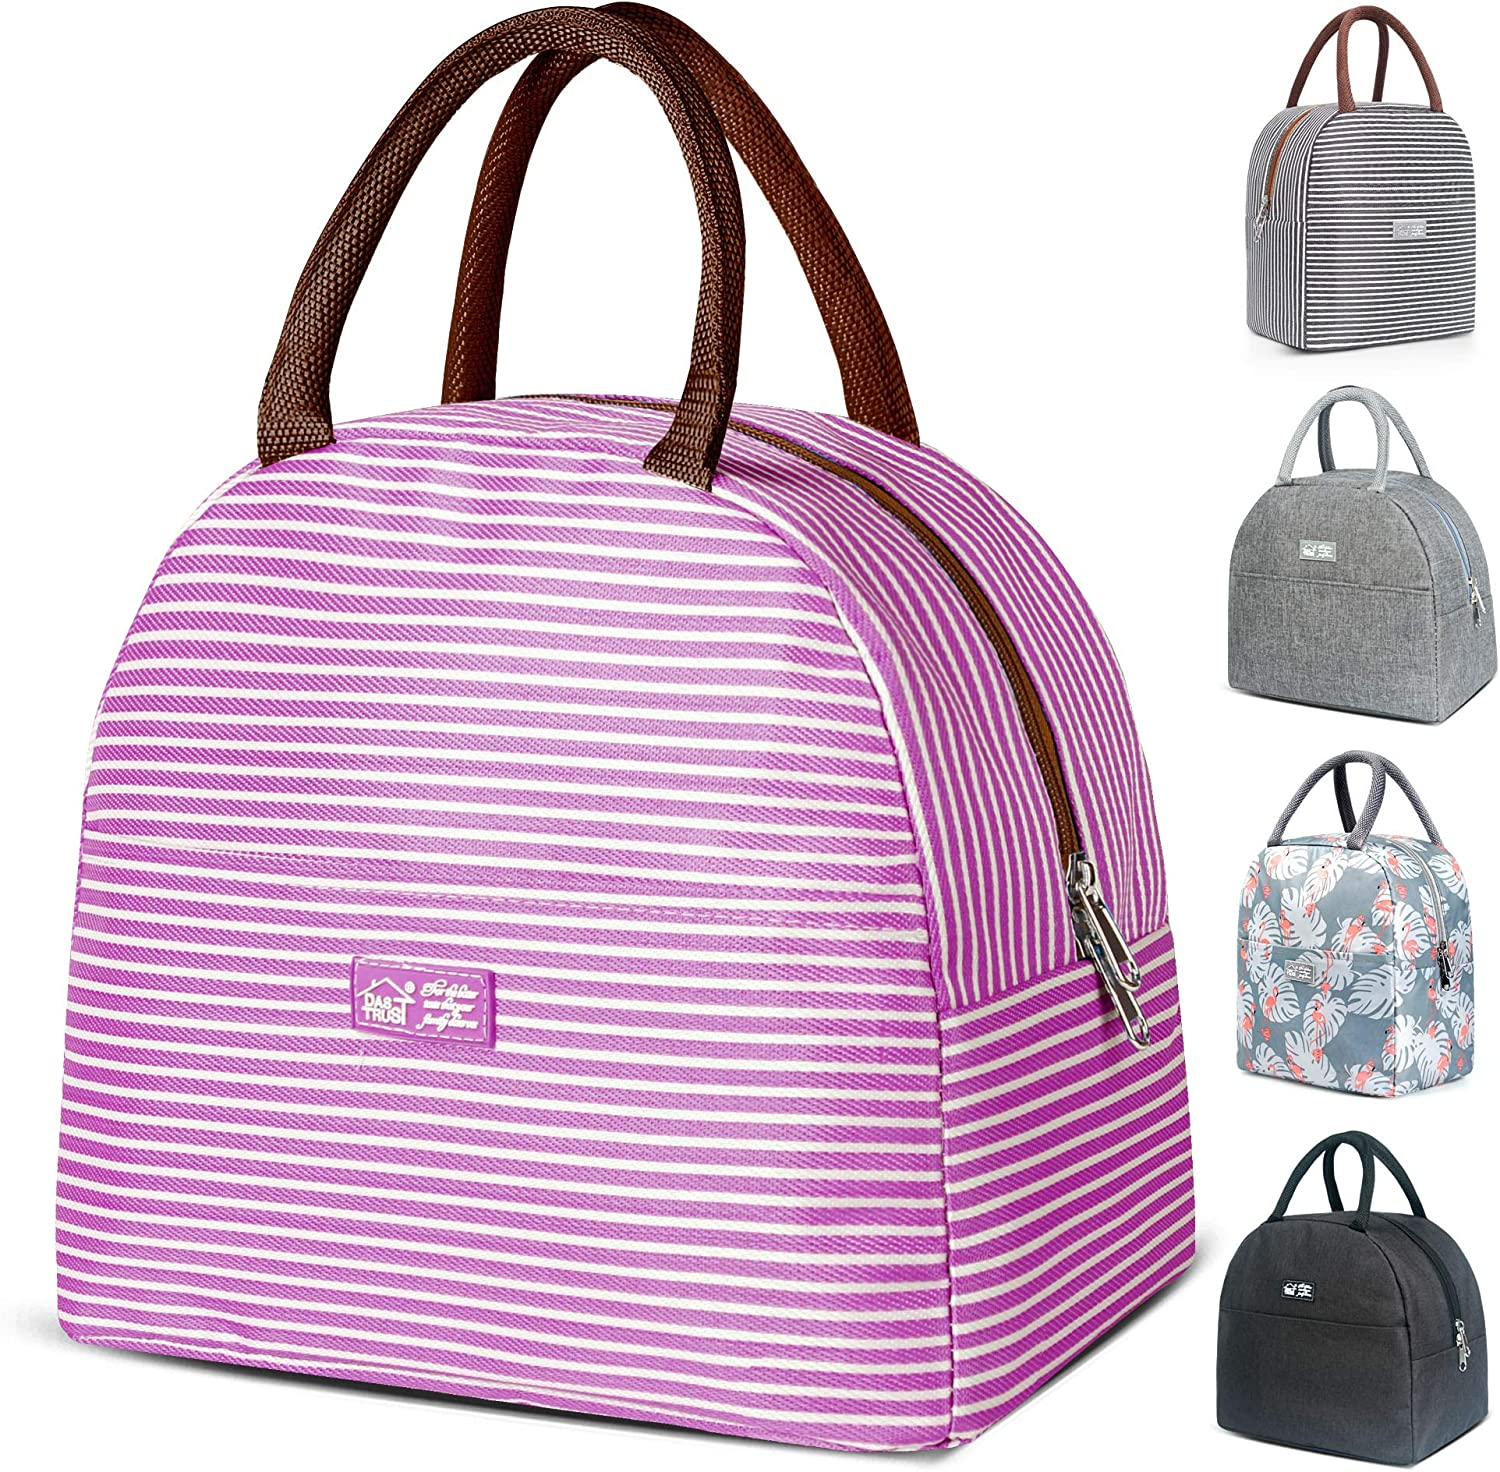 Reusable Insulated Lunch Bags for Women Men Meal Prep Container Leakproof Freezable Cooler Bag Durable Tote Bag Fashionable Lunchbox Container for Work School Picnic Purple Strip